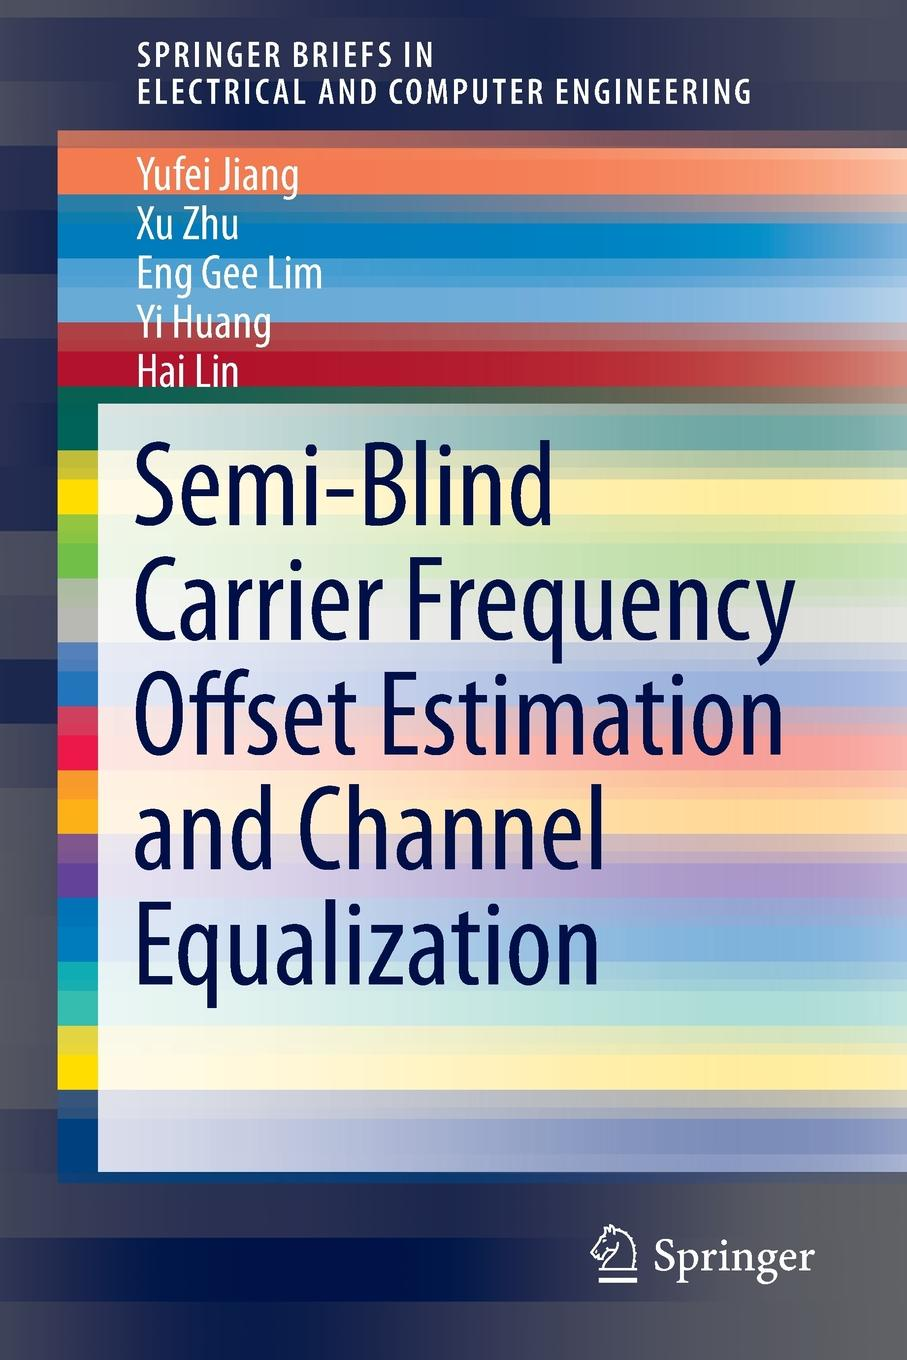 Yufei Jiang, Xu Zhu, Eng Gee Lim Semi-Blind Carrier Frequency Offset Estimation and Channel Equalization недорго, оригинальная цена